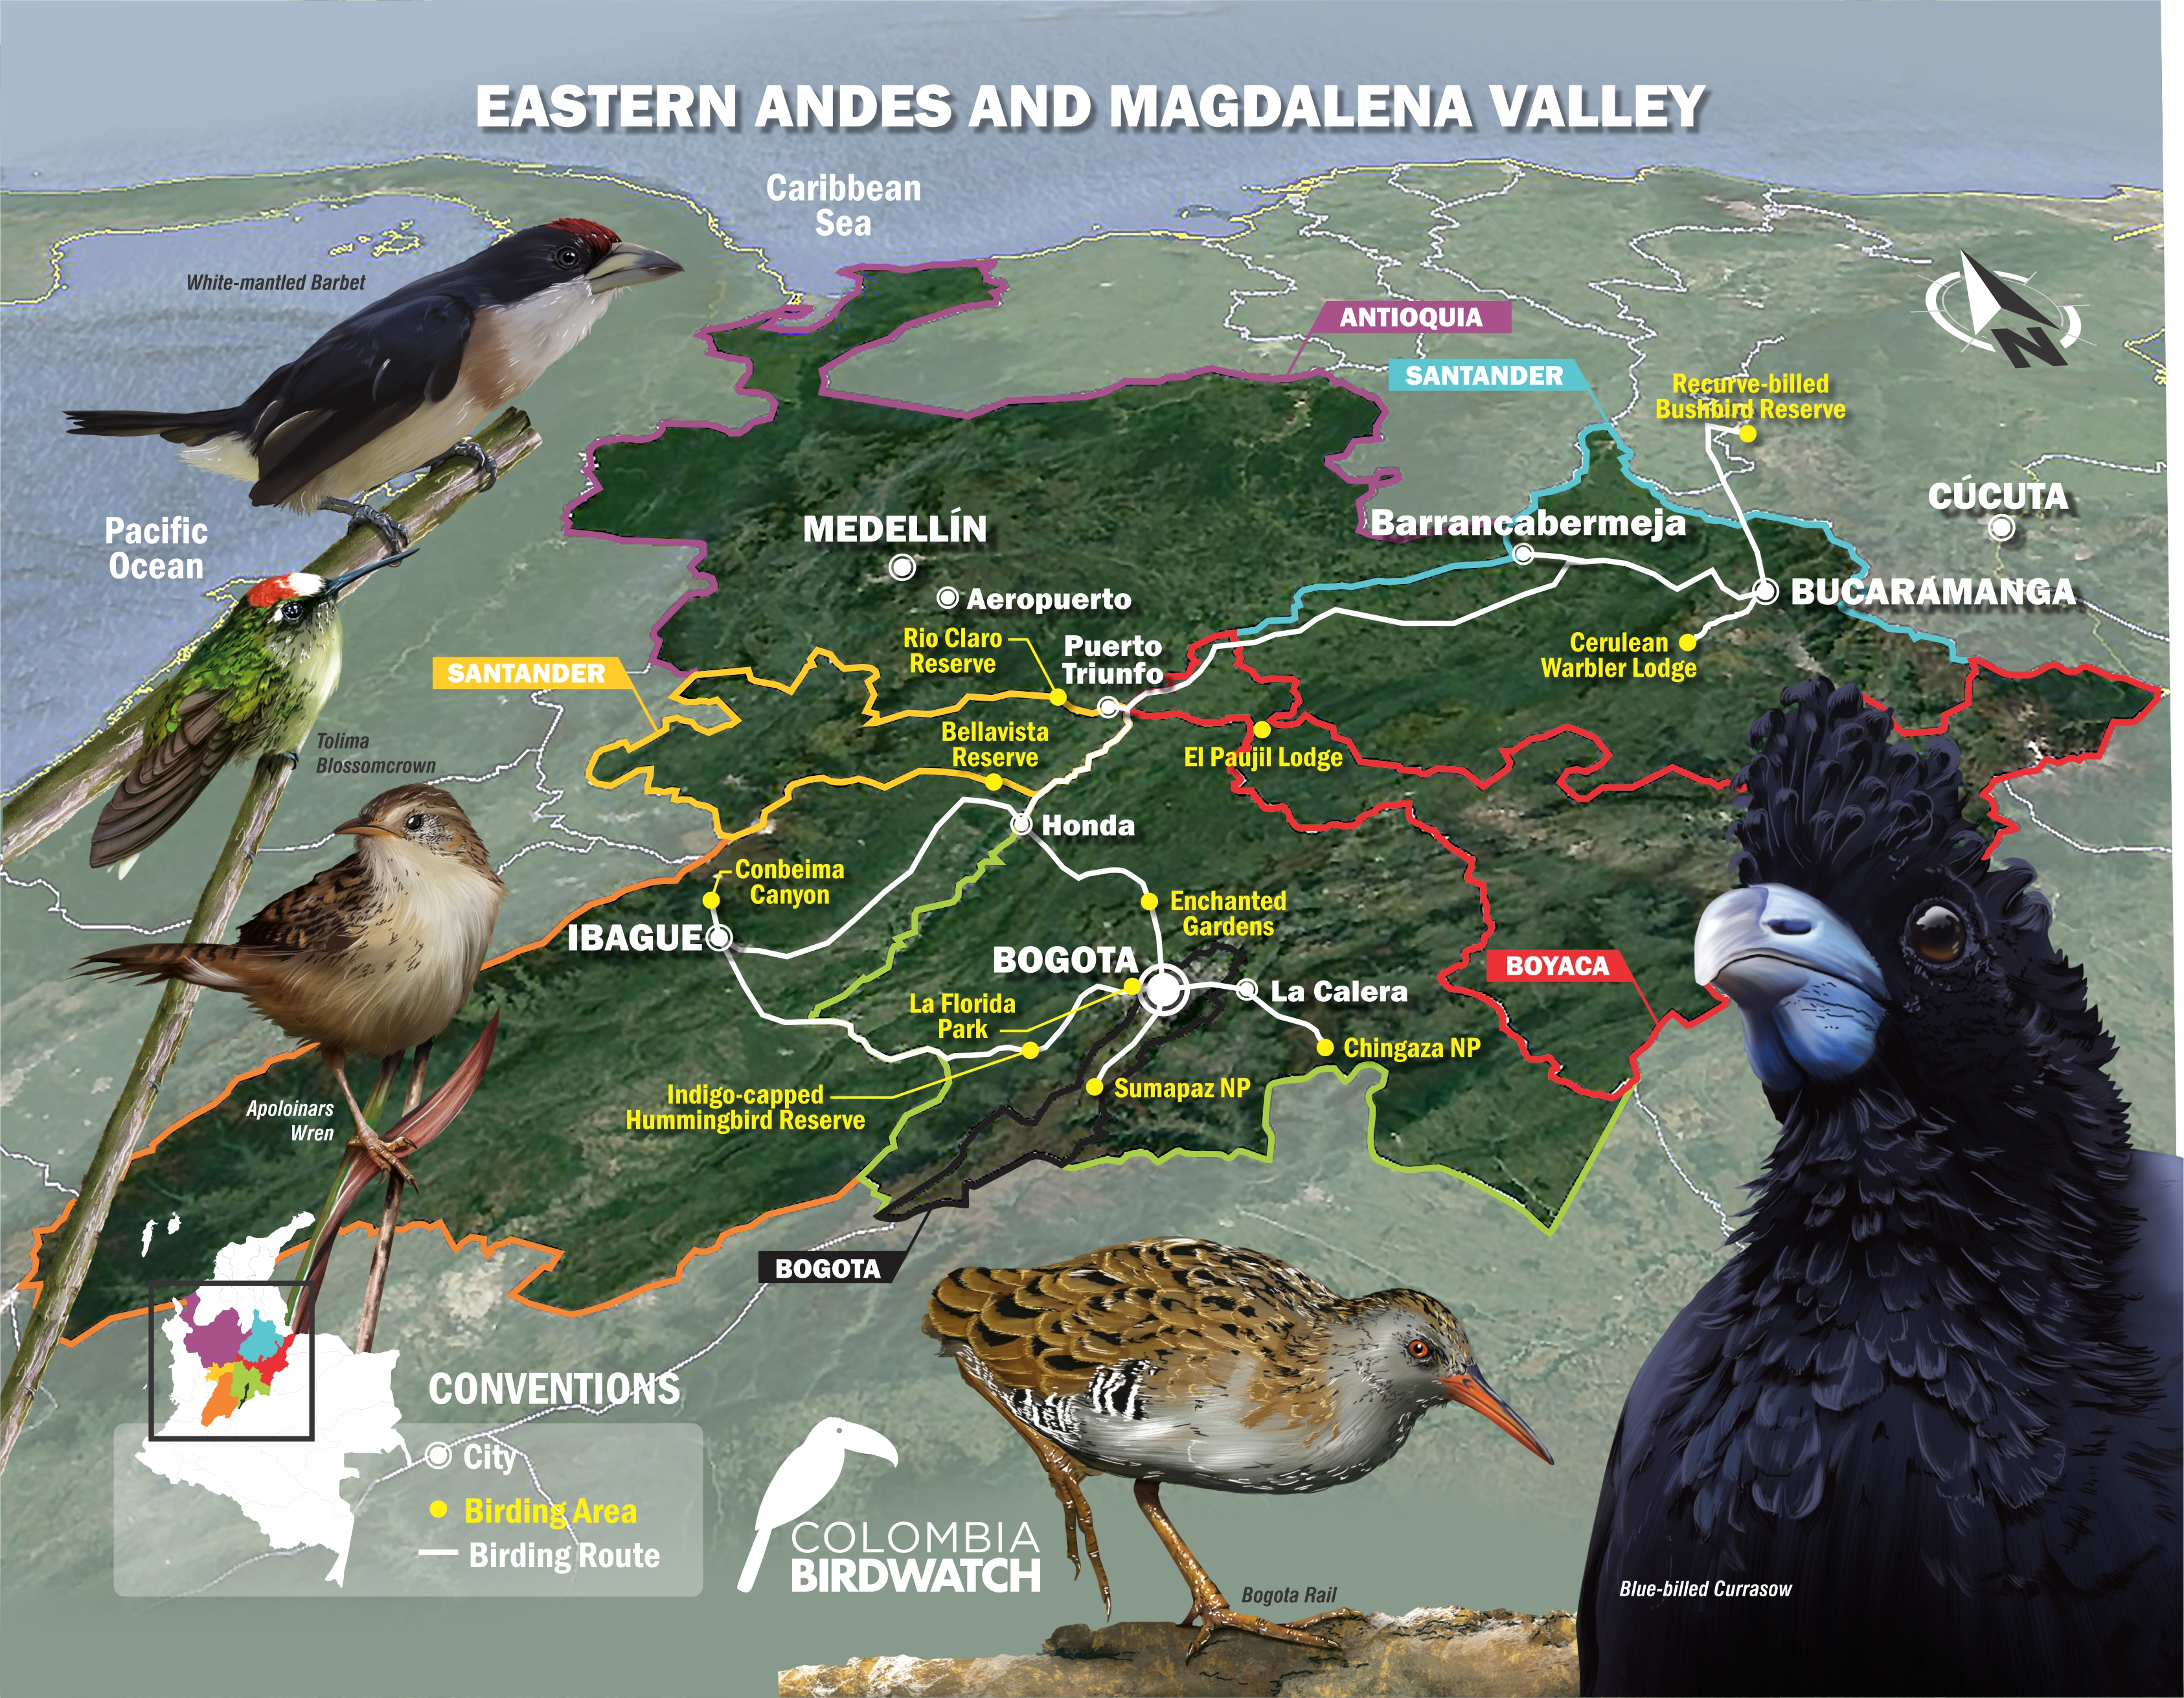 EASTERN ANDES AND MAGDALENA VALLEY